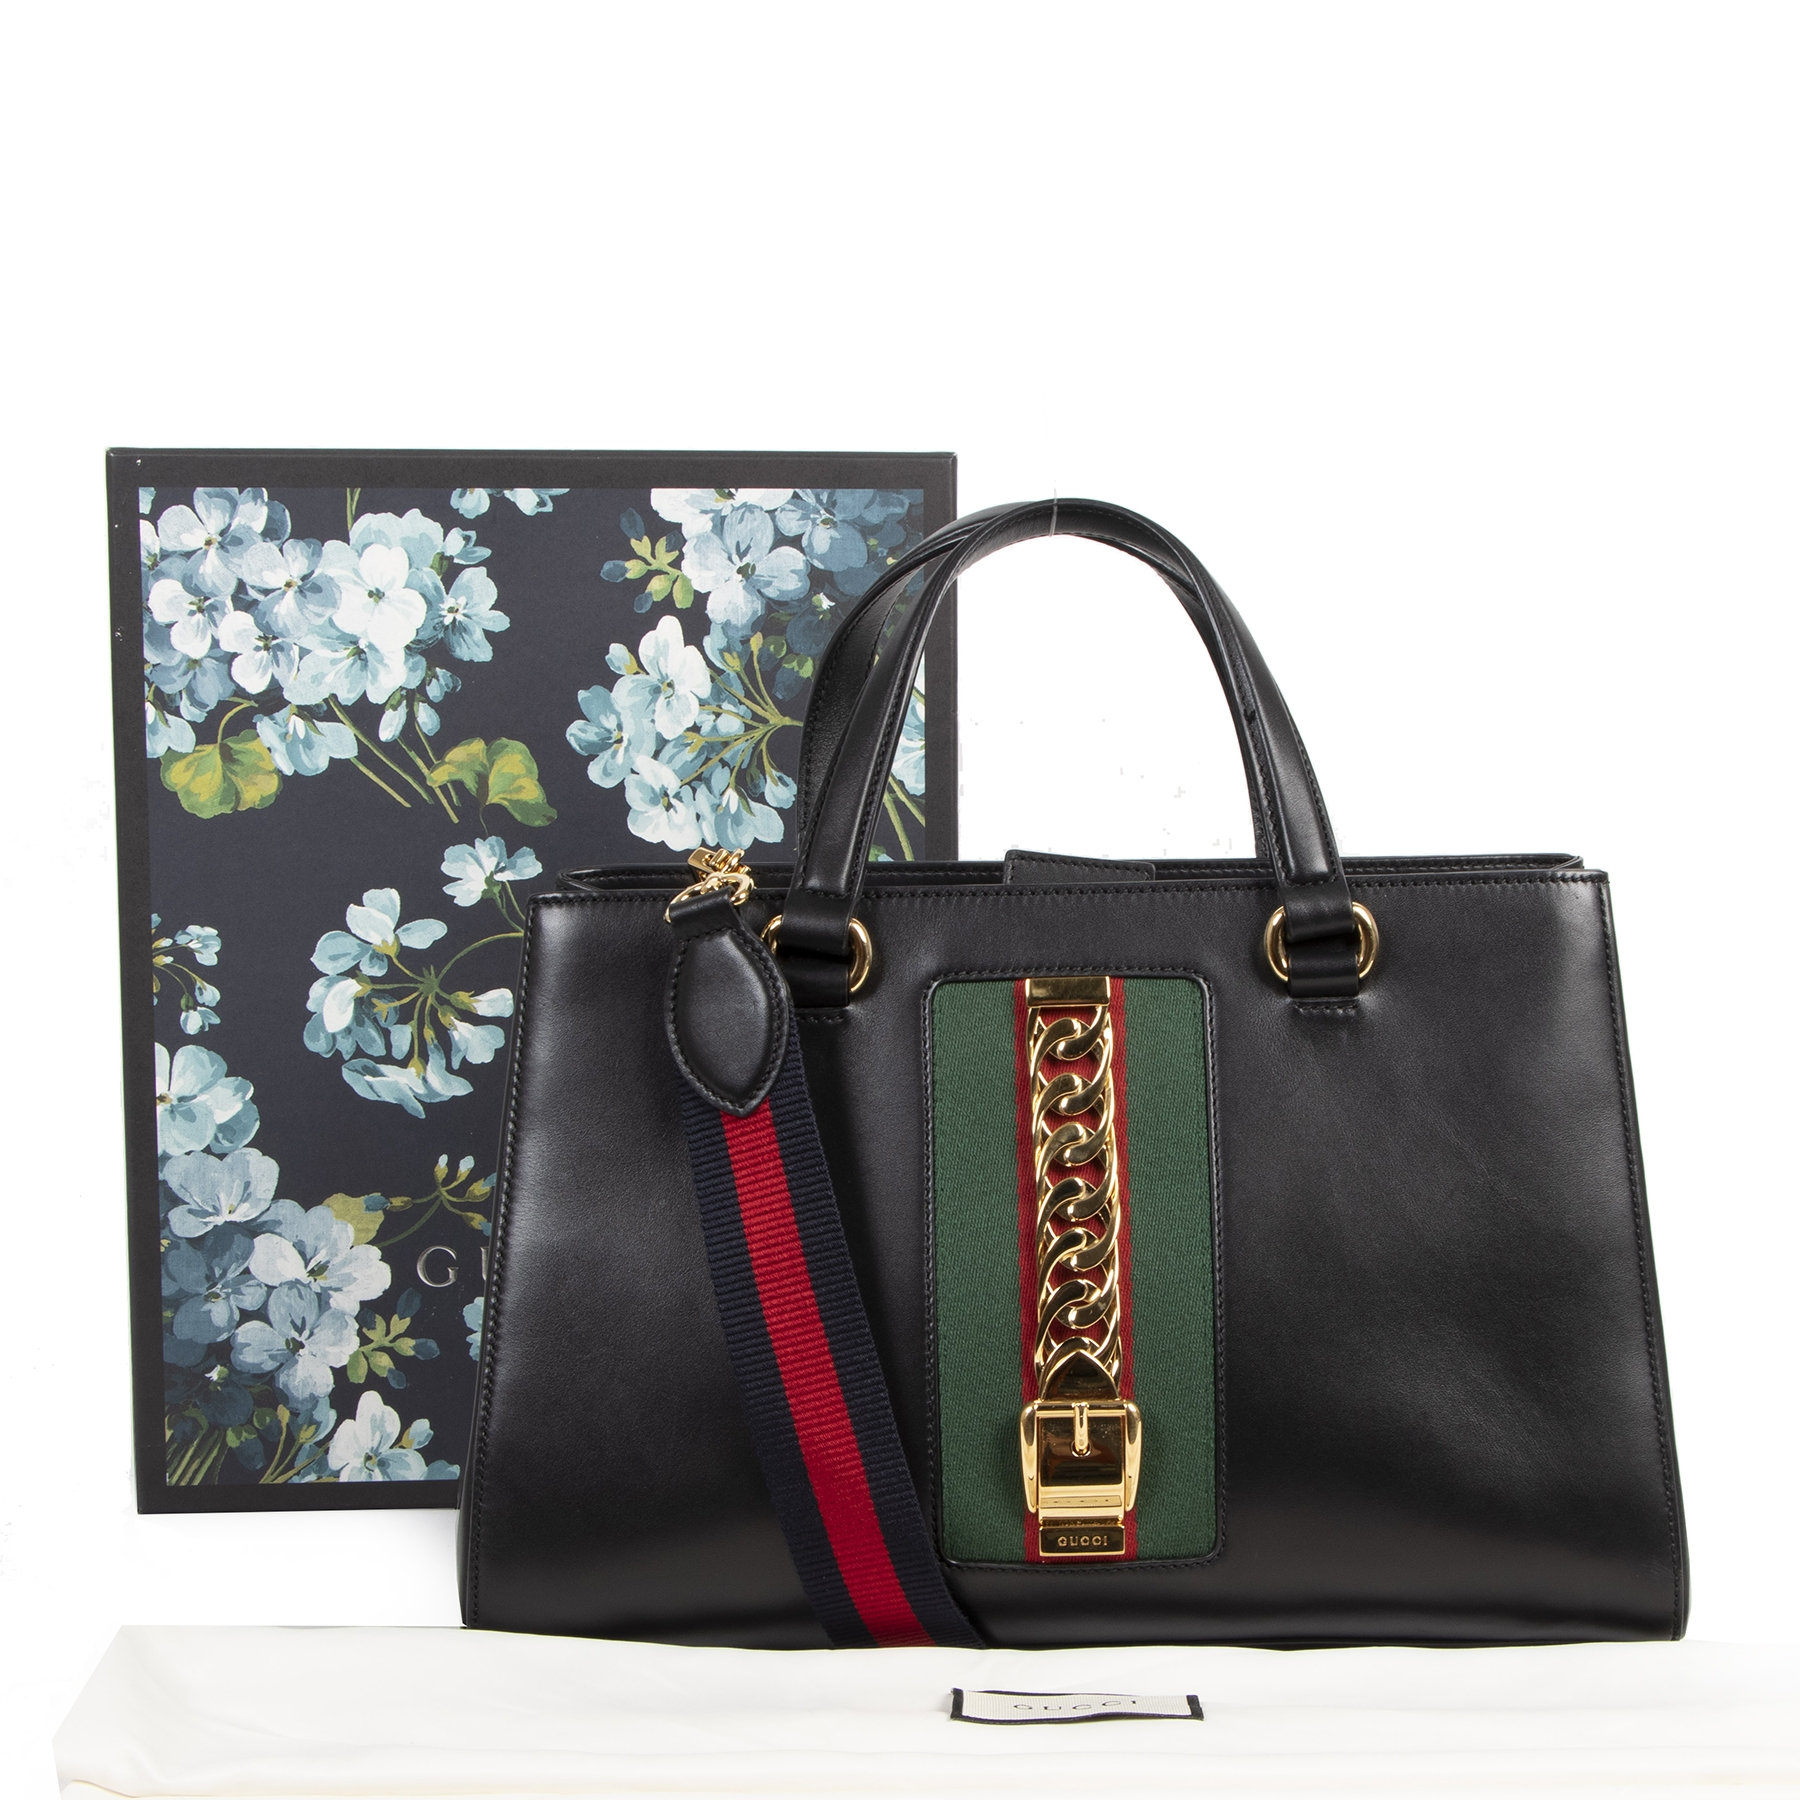 Authentieke tweedehands vintage Gucci Sylvie Black Shoulder Bag  koop online webshop LabelLOV